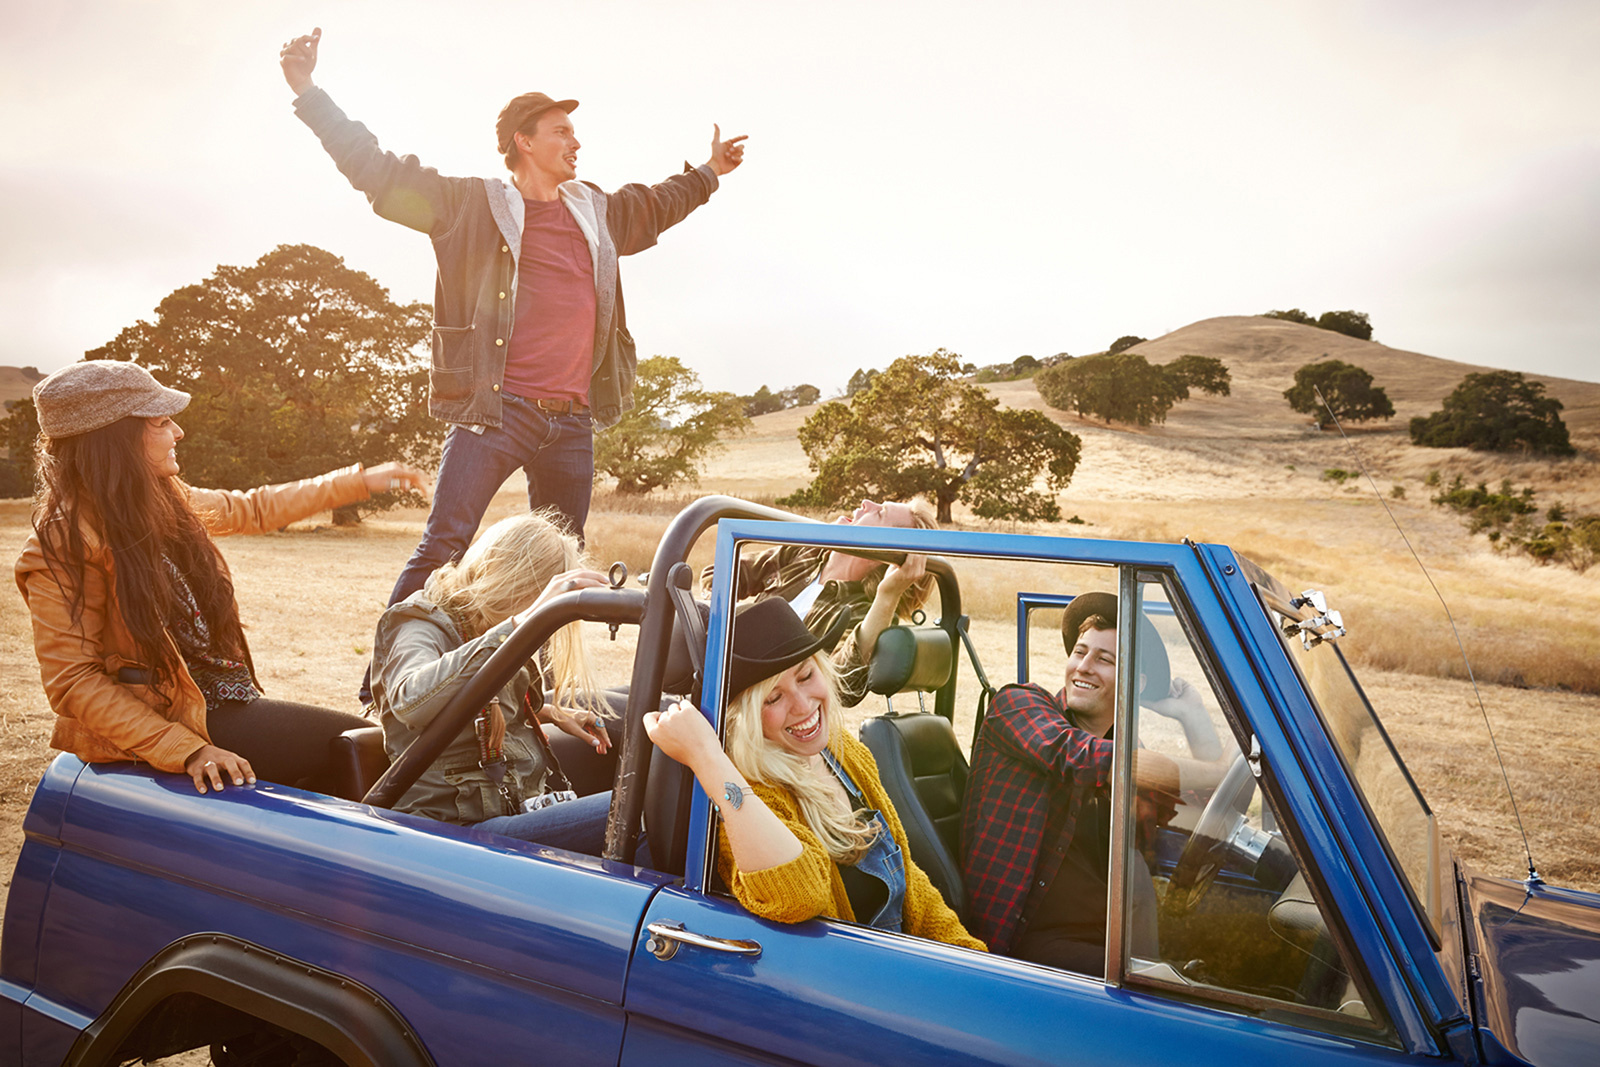 Group of Hipsters in truck  | Dovis Bird Agency Photography